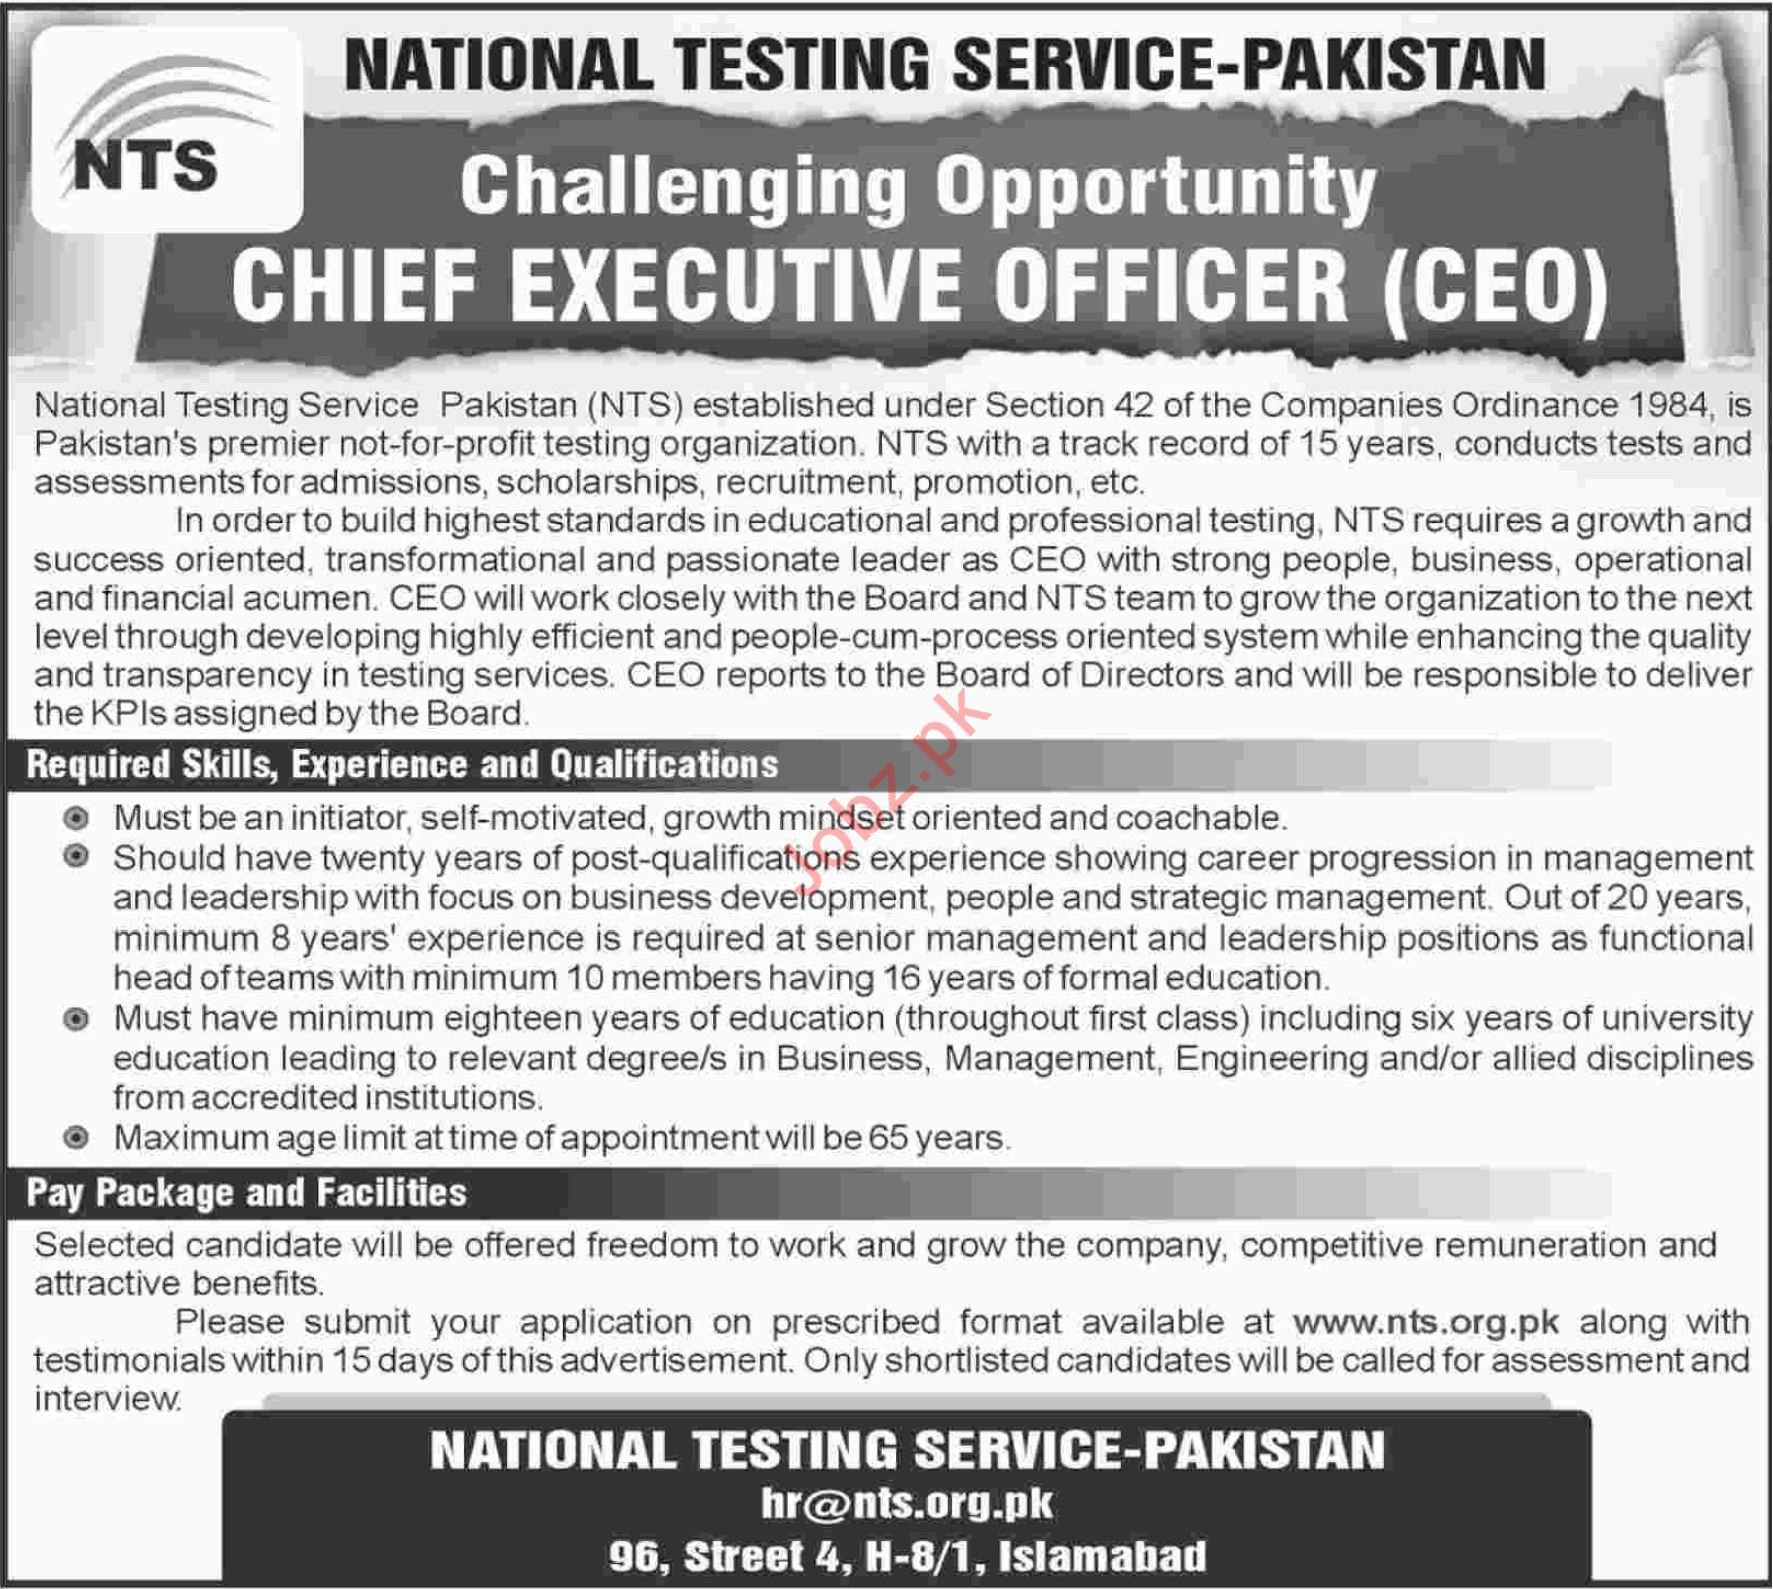 Chief Executive Officer for NTS